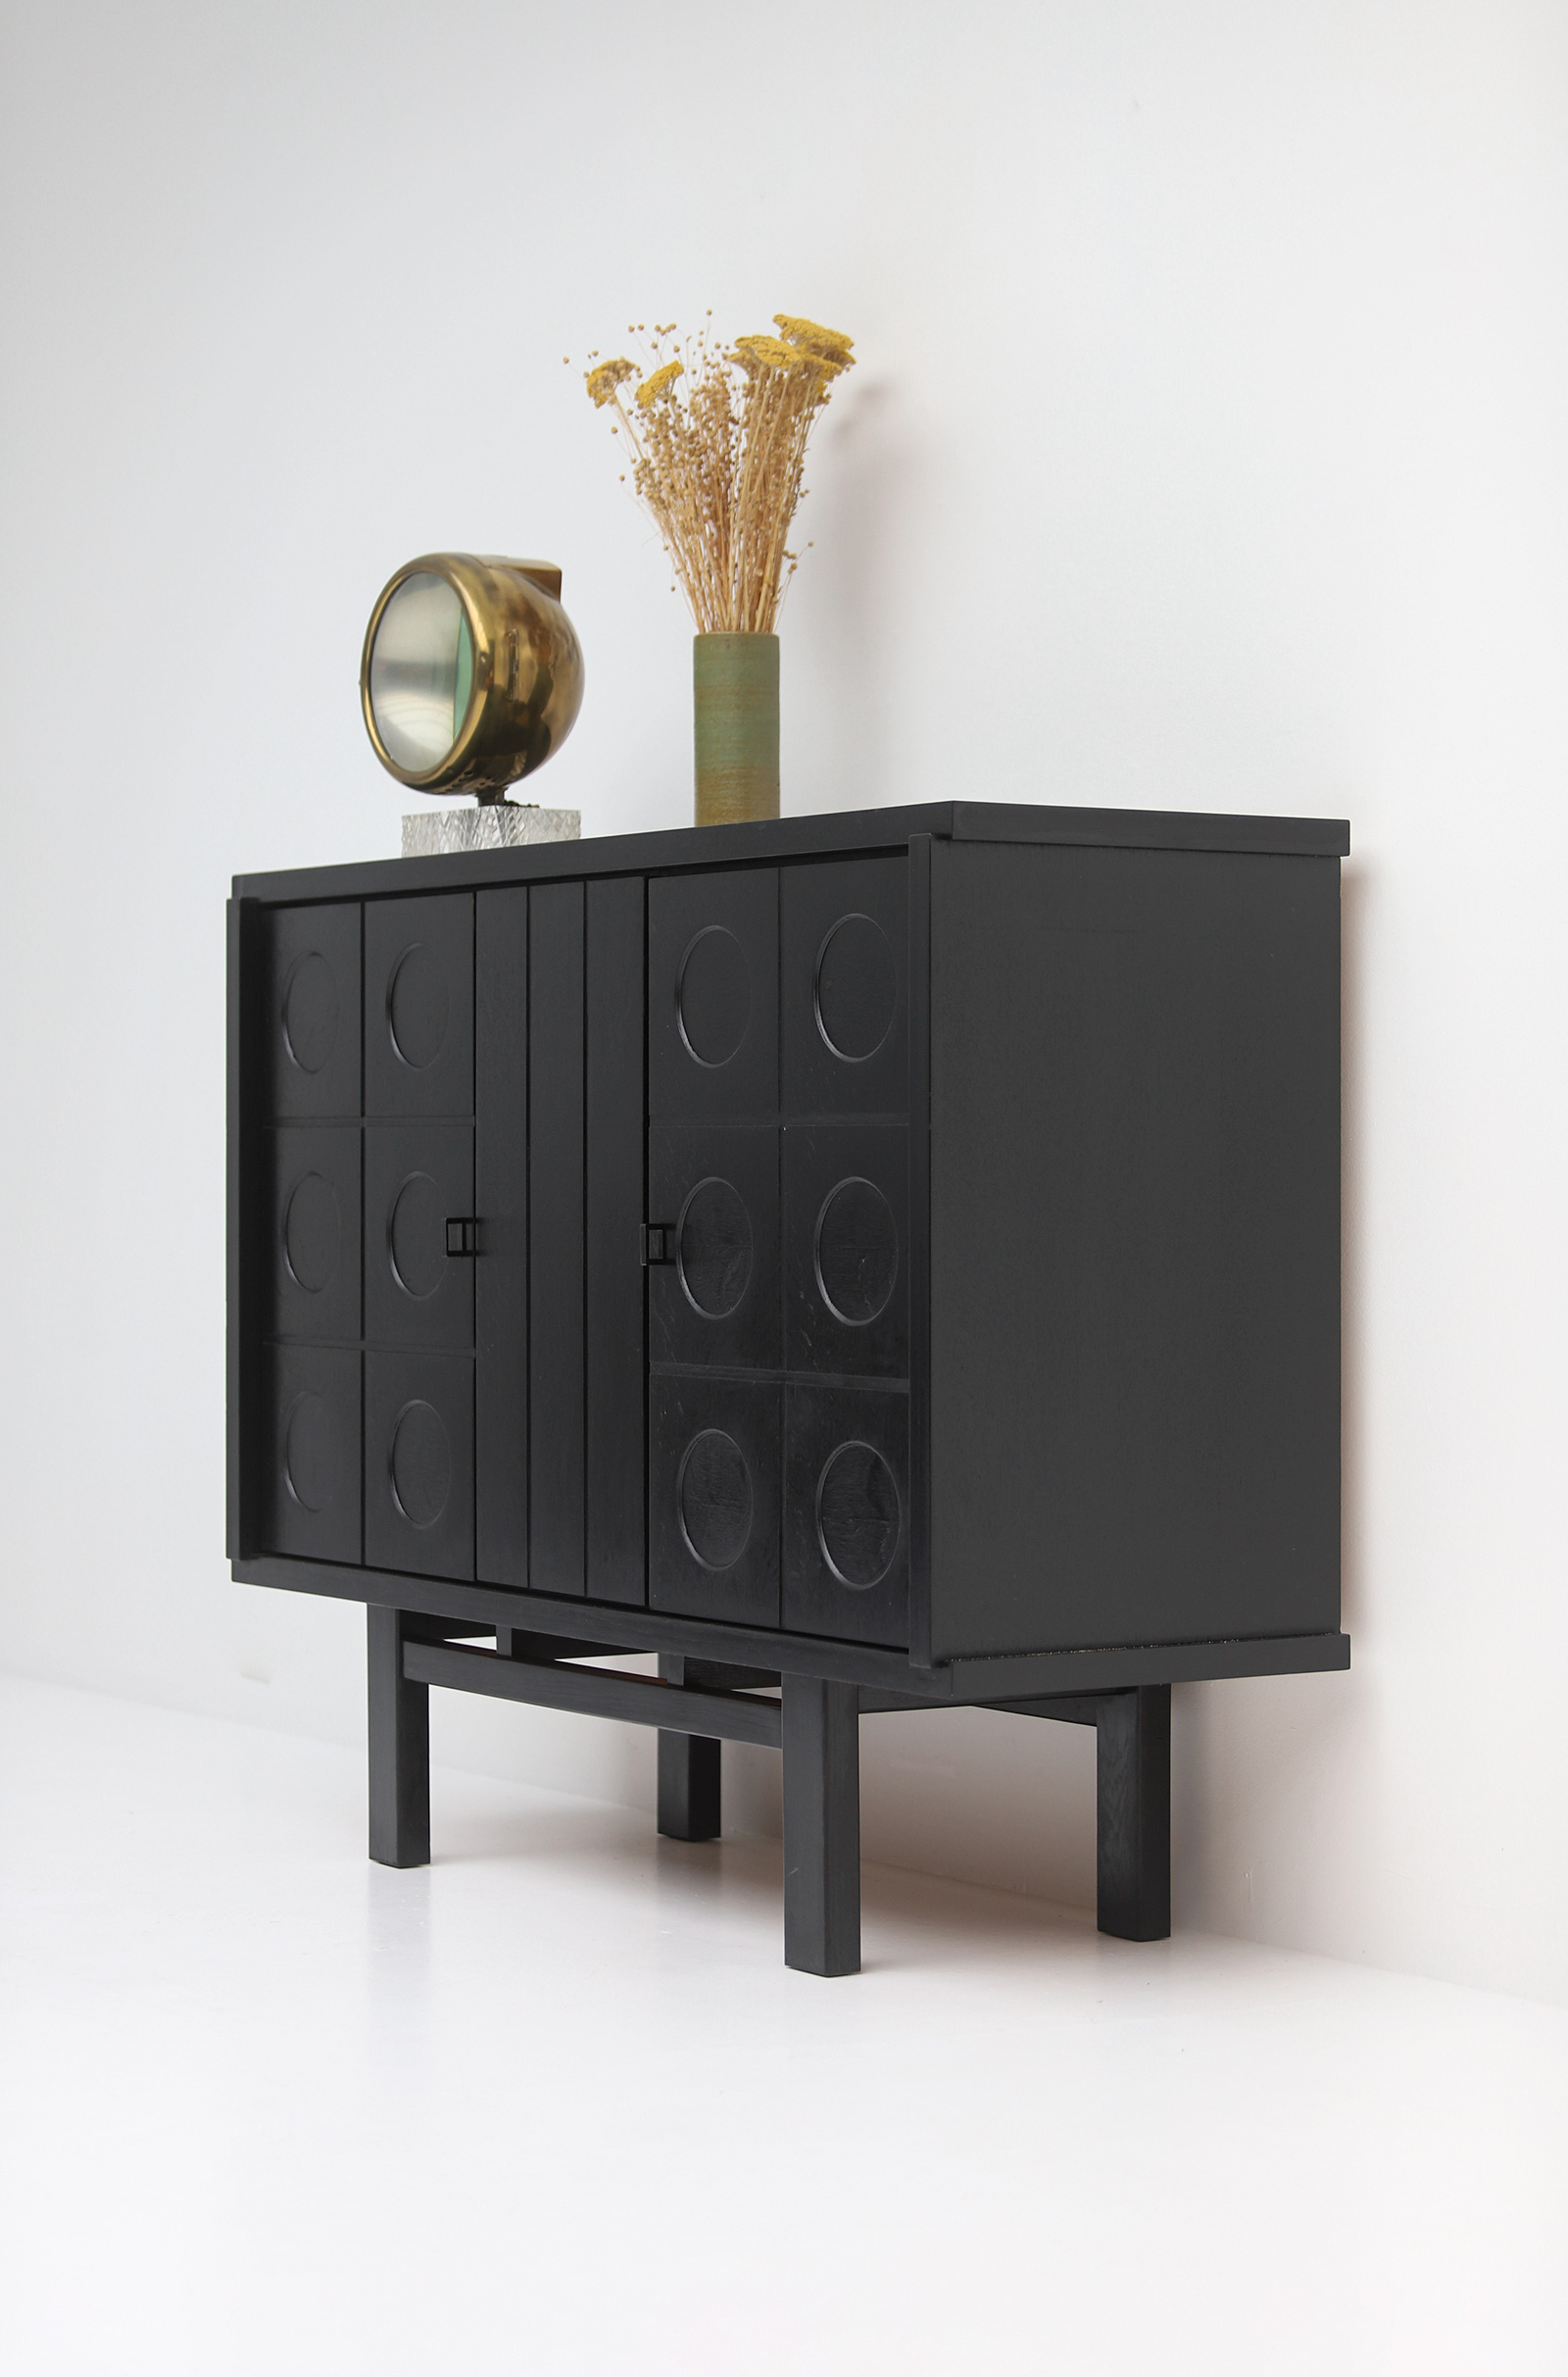 Decorative Black Cabinet with Patterned doors image 7